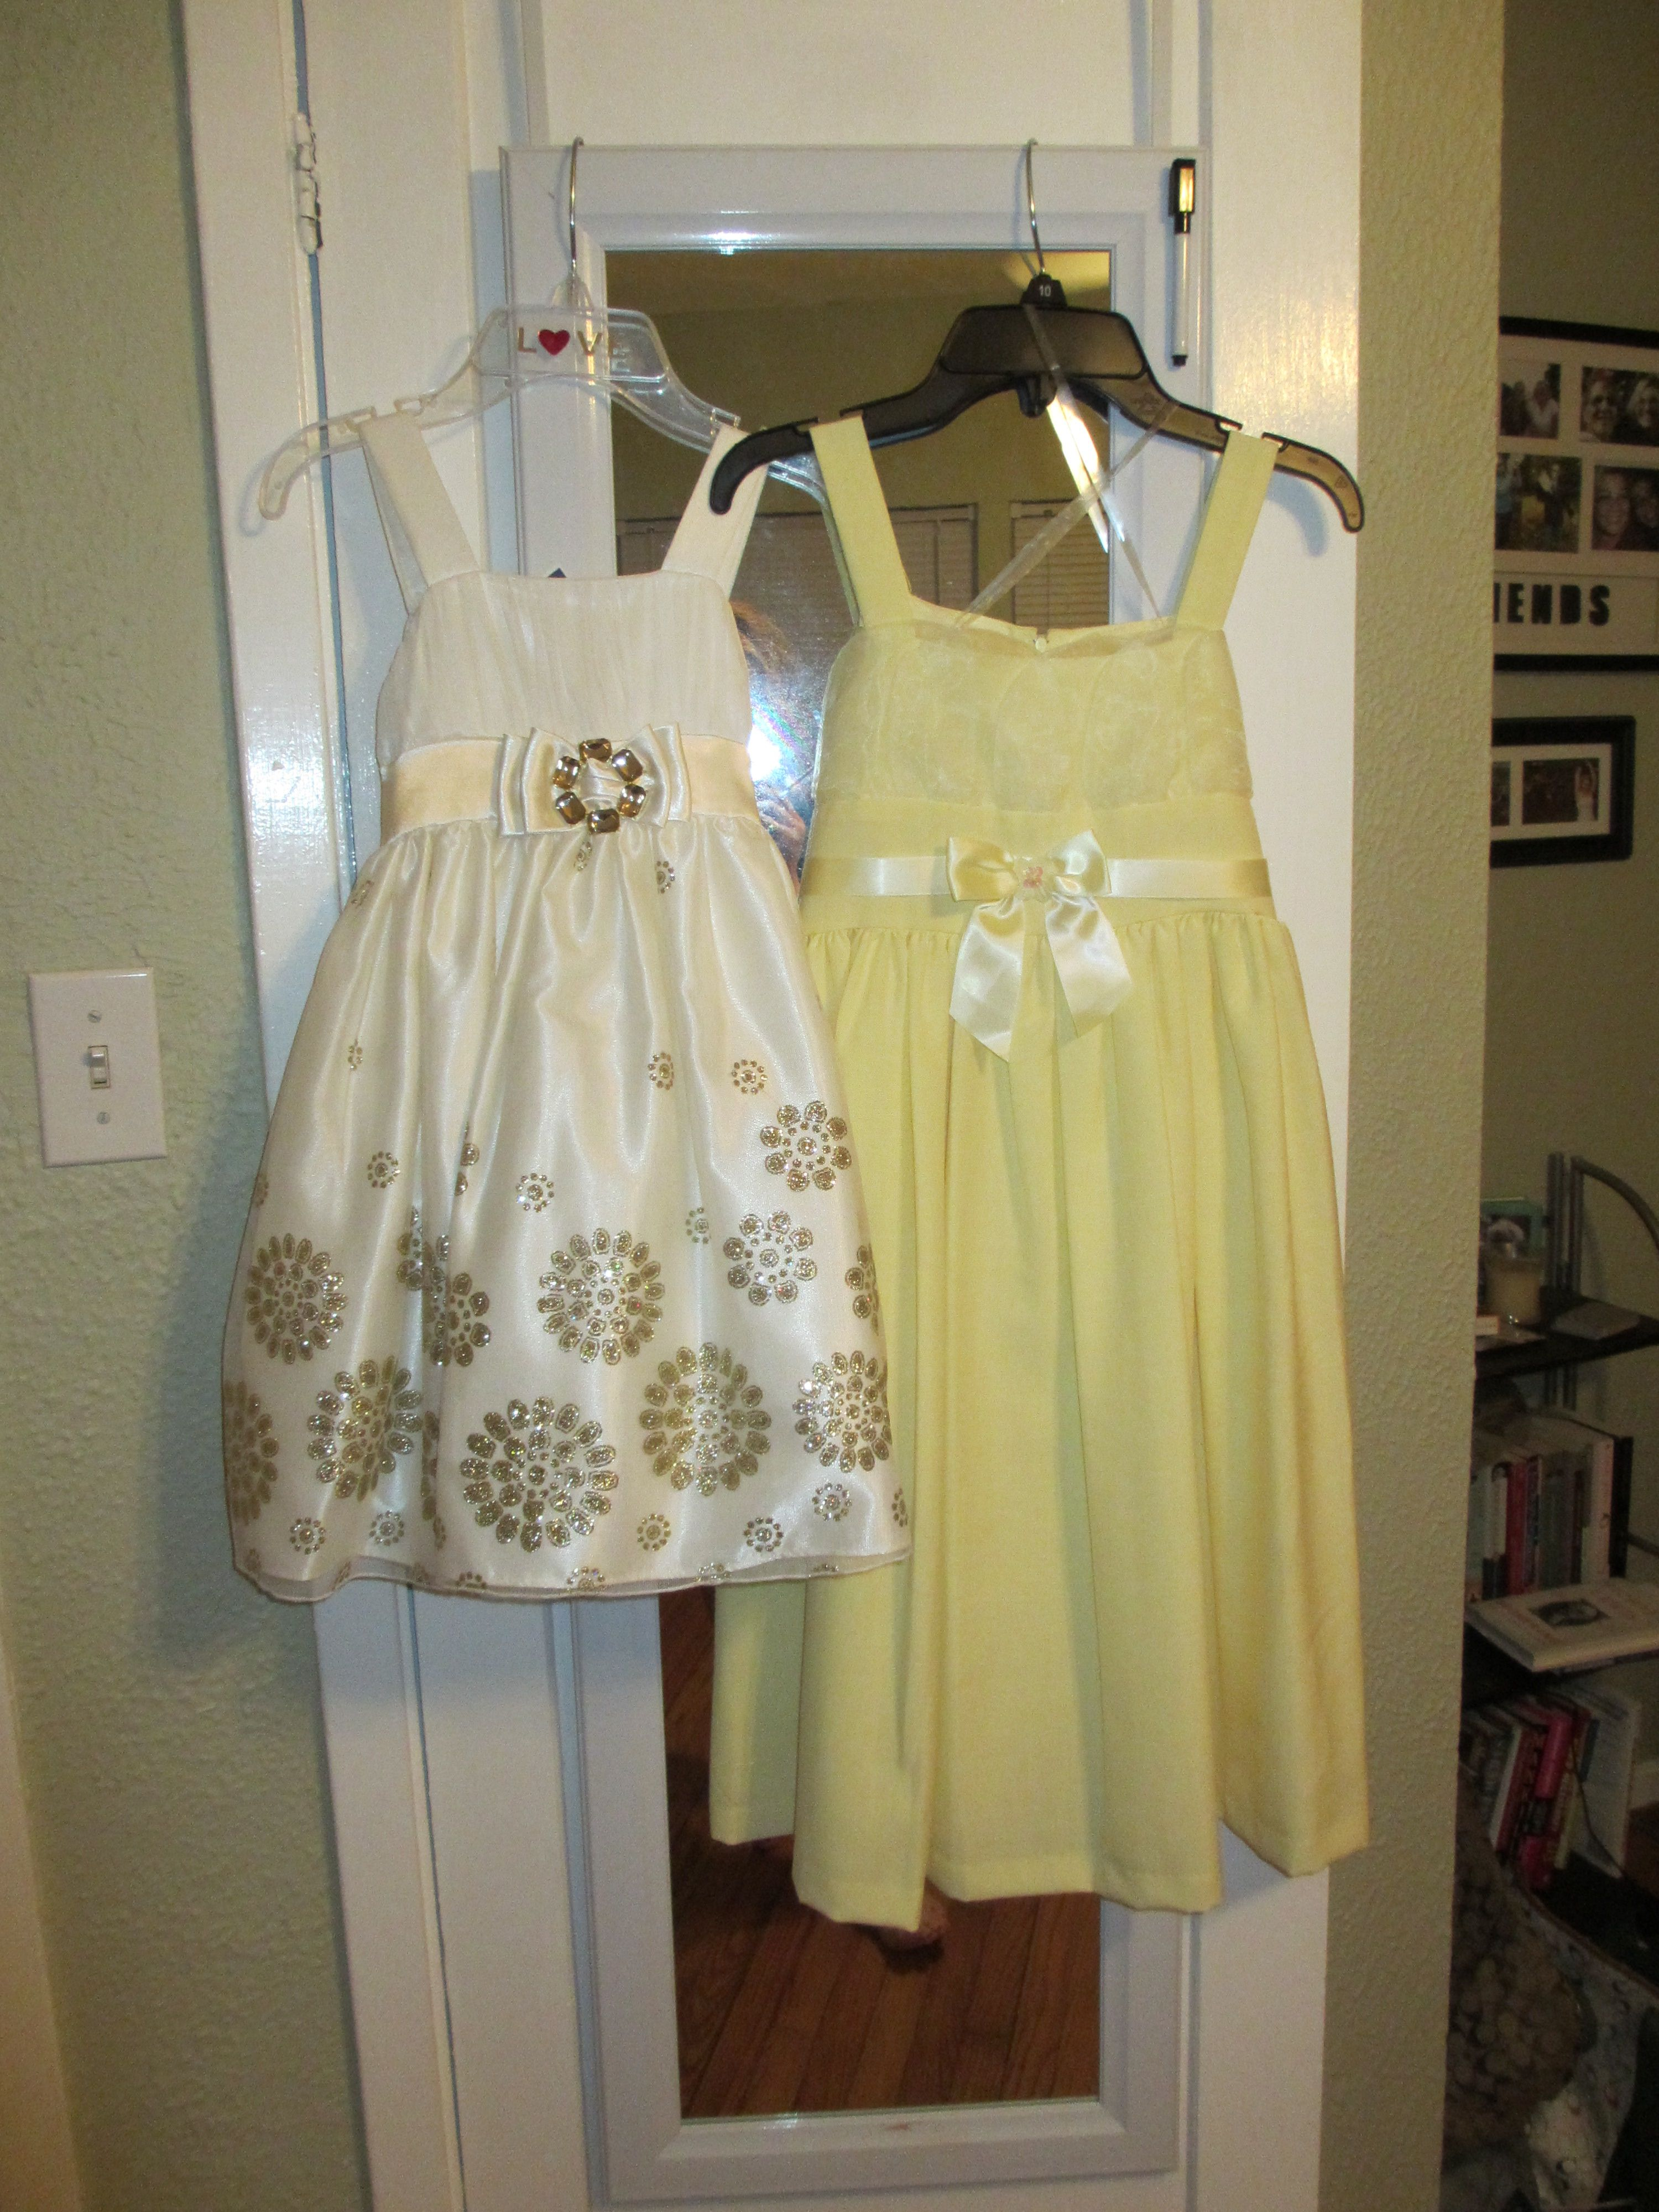 912e0b8df7cc Flower Girl Dresses. From Marshalls (left) and JC Penny (right). Each for  only $25. It was so fun to shop :)